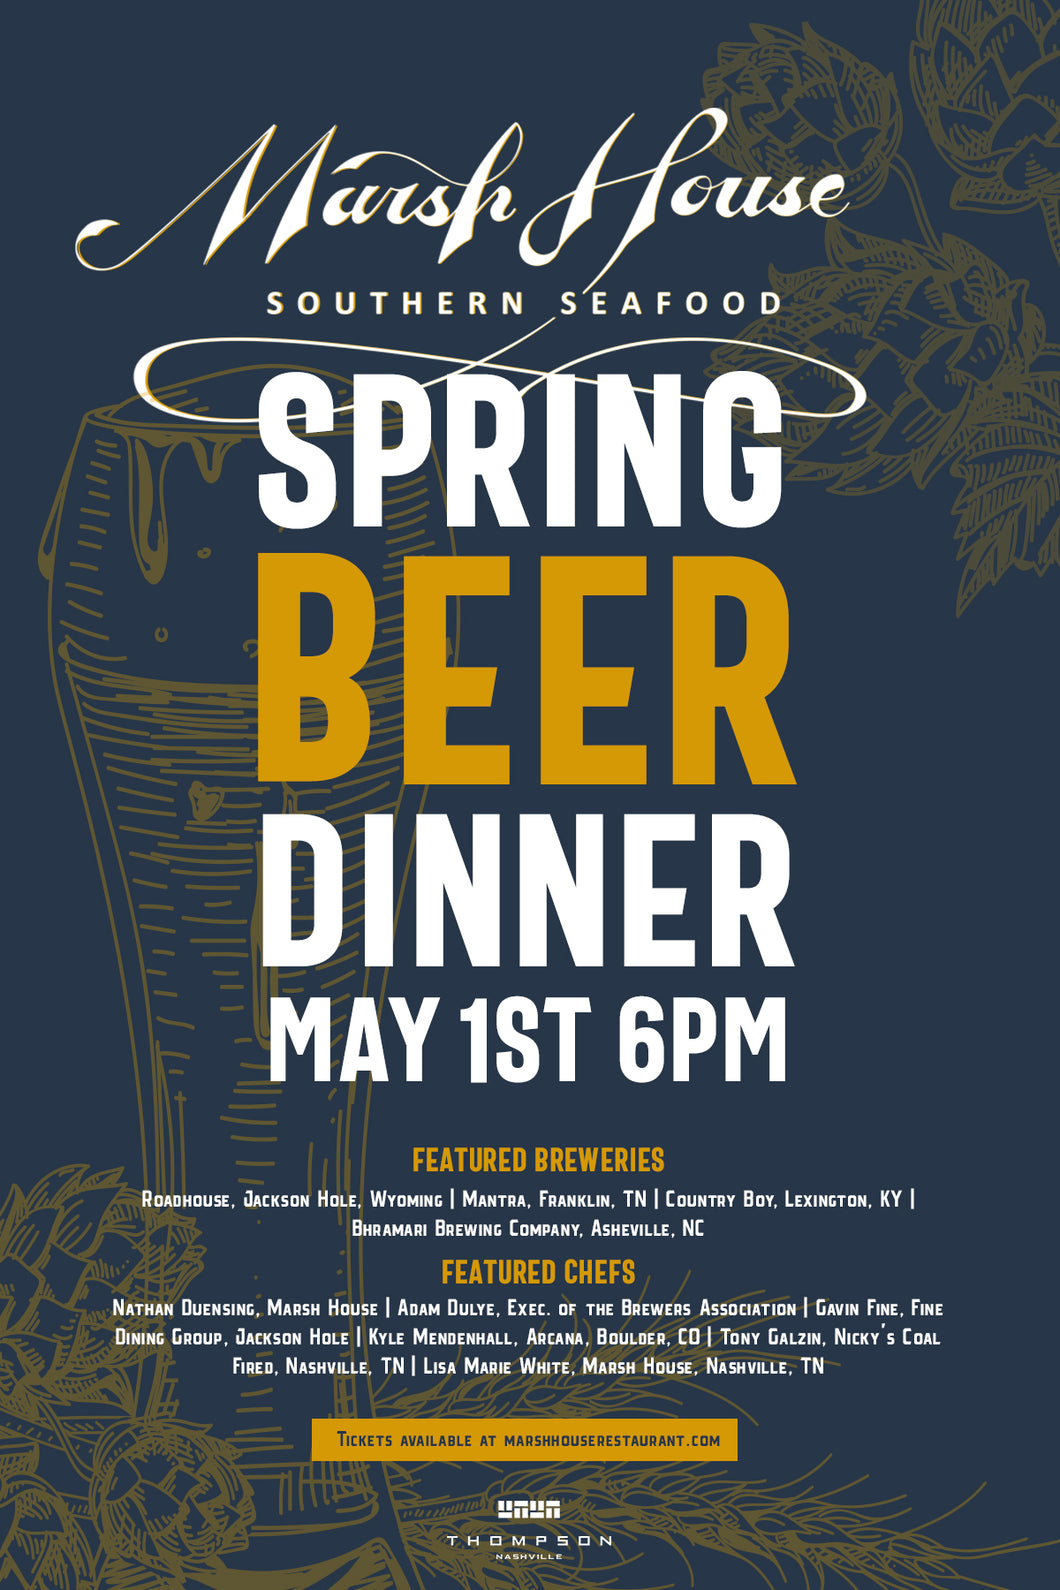 Marsh House Spring Beer Dinner